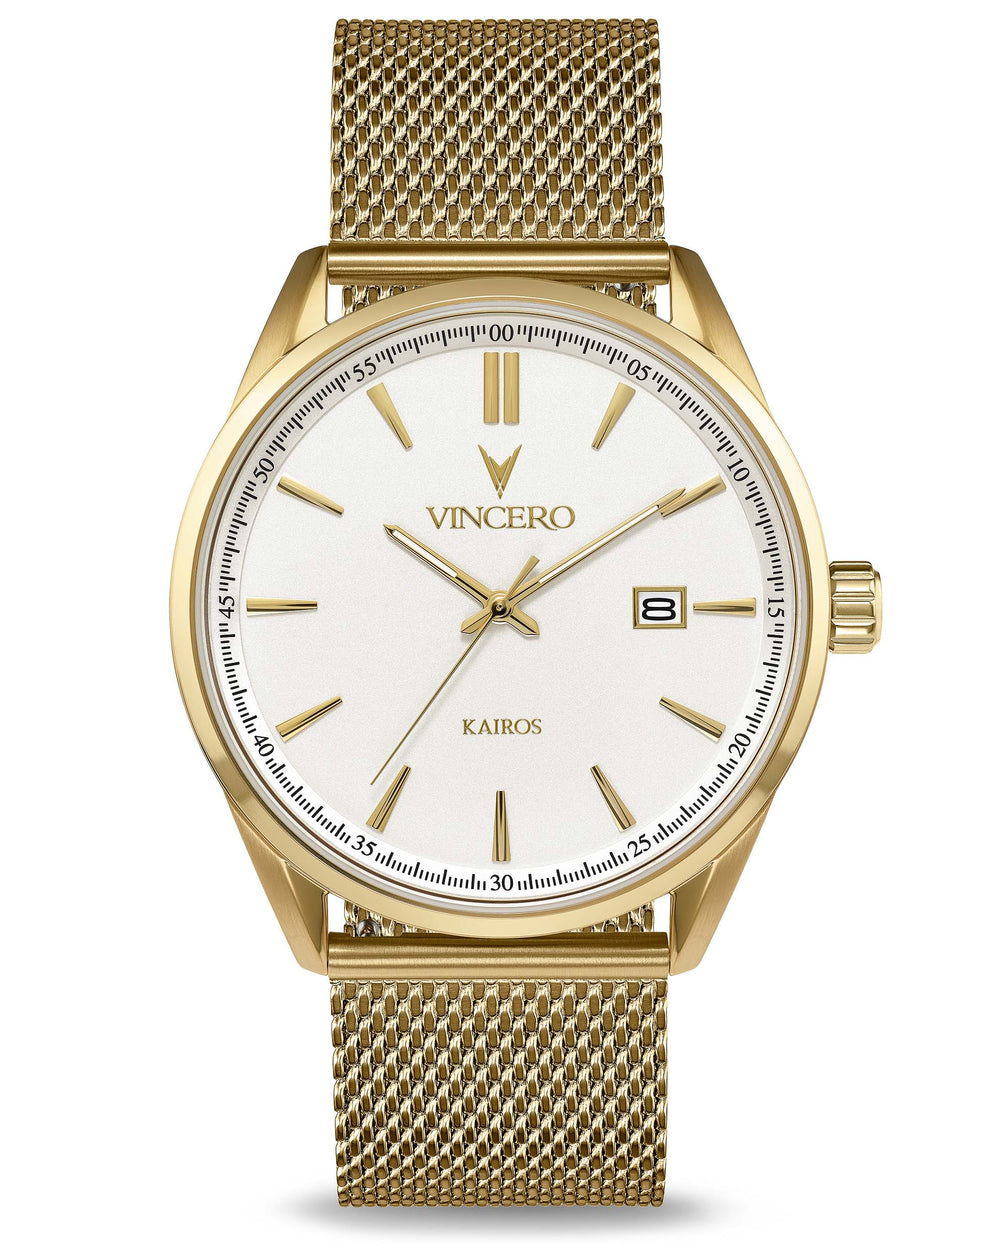 The Kairos Limited Release - White/Gold